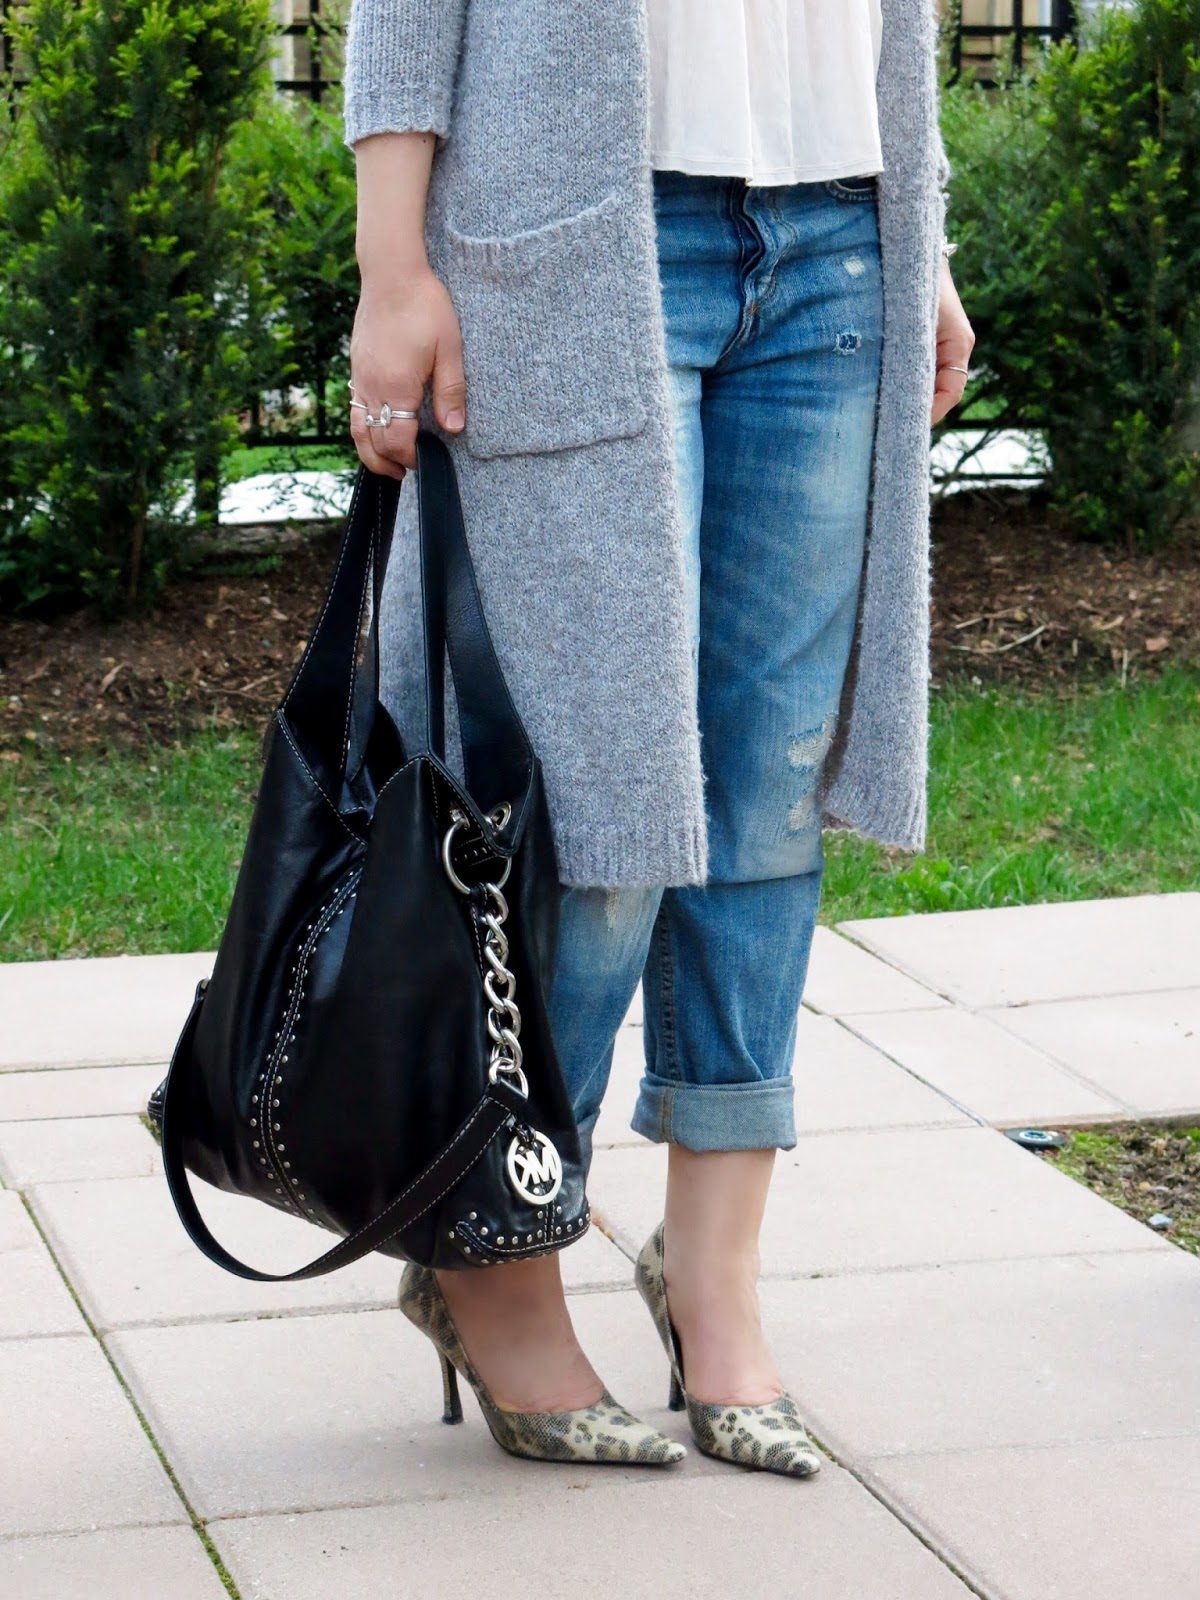 boyfriend jeans, long cardigan, reptile-patterned pumps, and MK bag